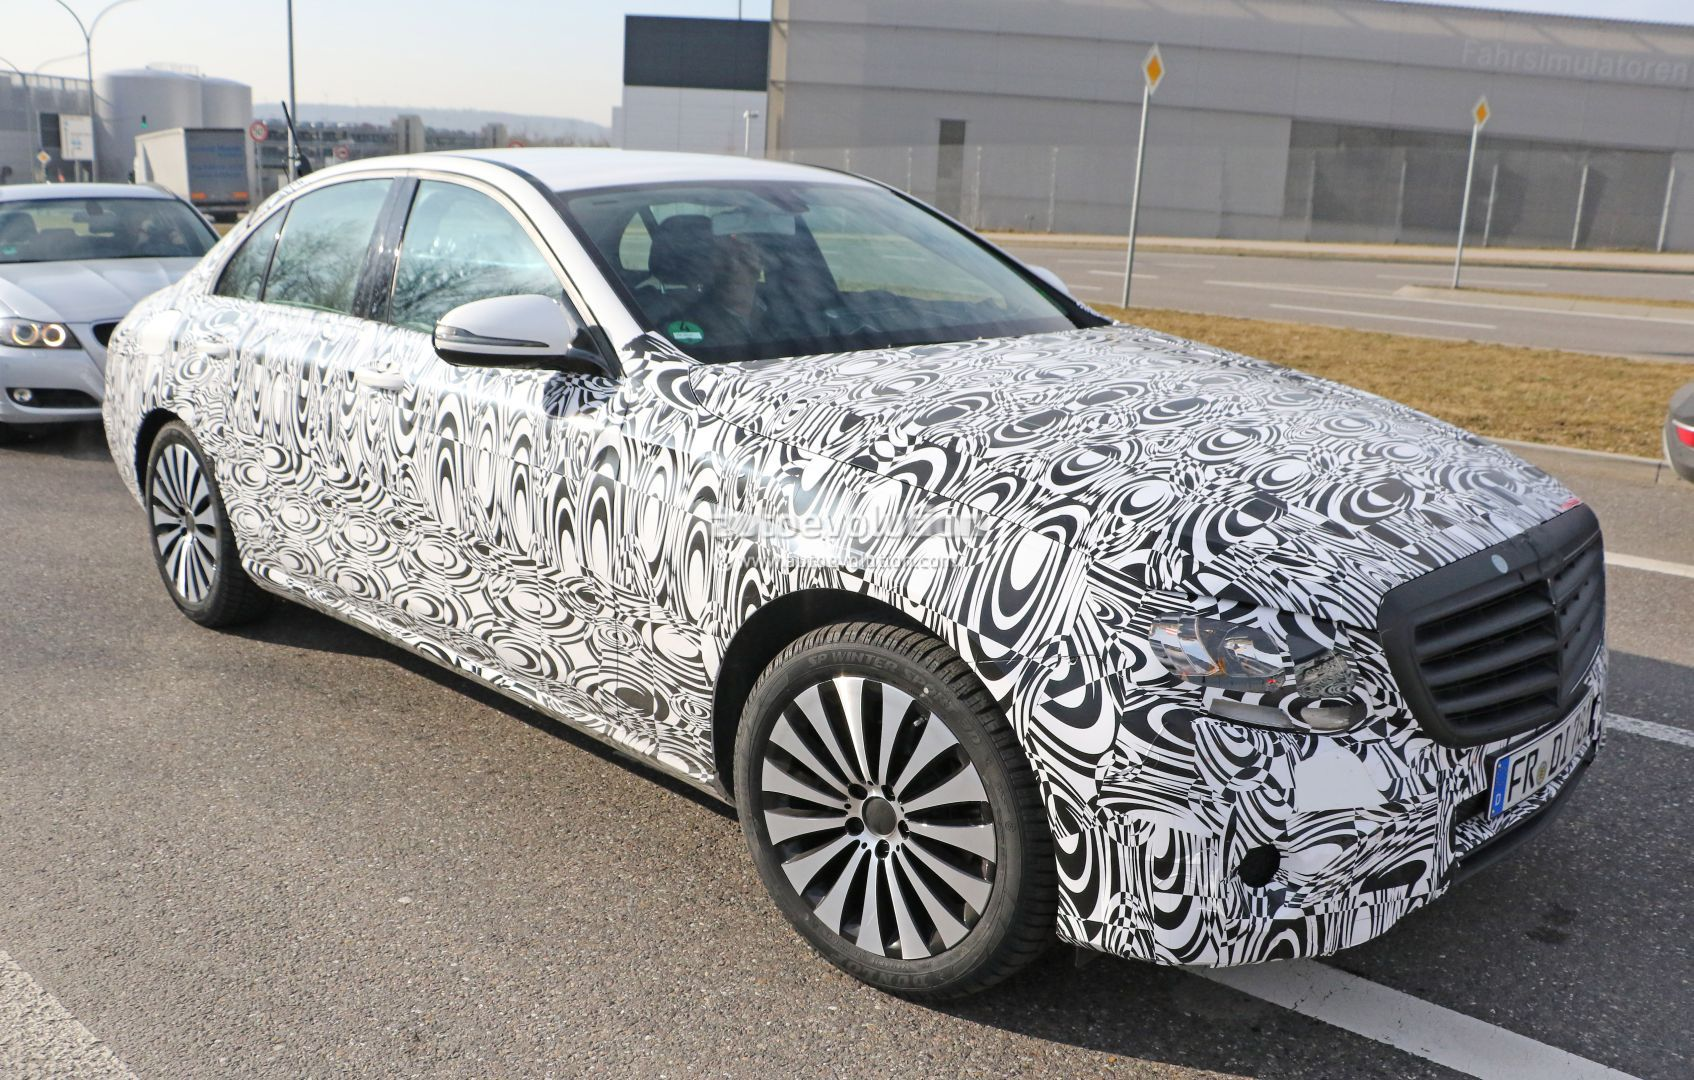 2017 Mercedes Benz E Cl Drops Heavy Camouflage Reveals Silhouette In Latest Spyshots